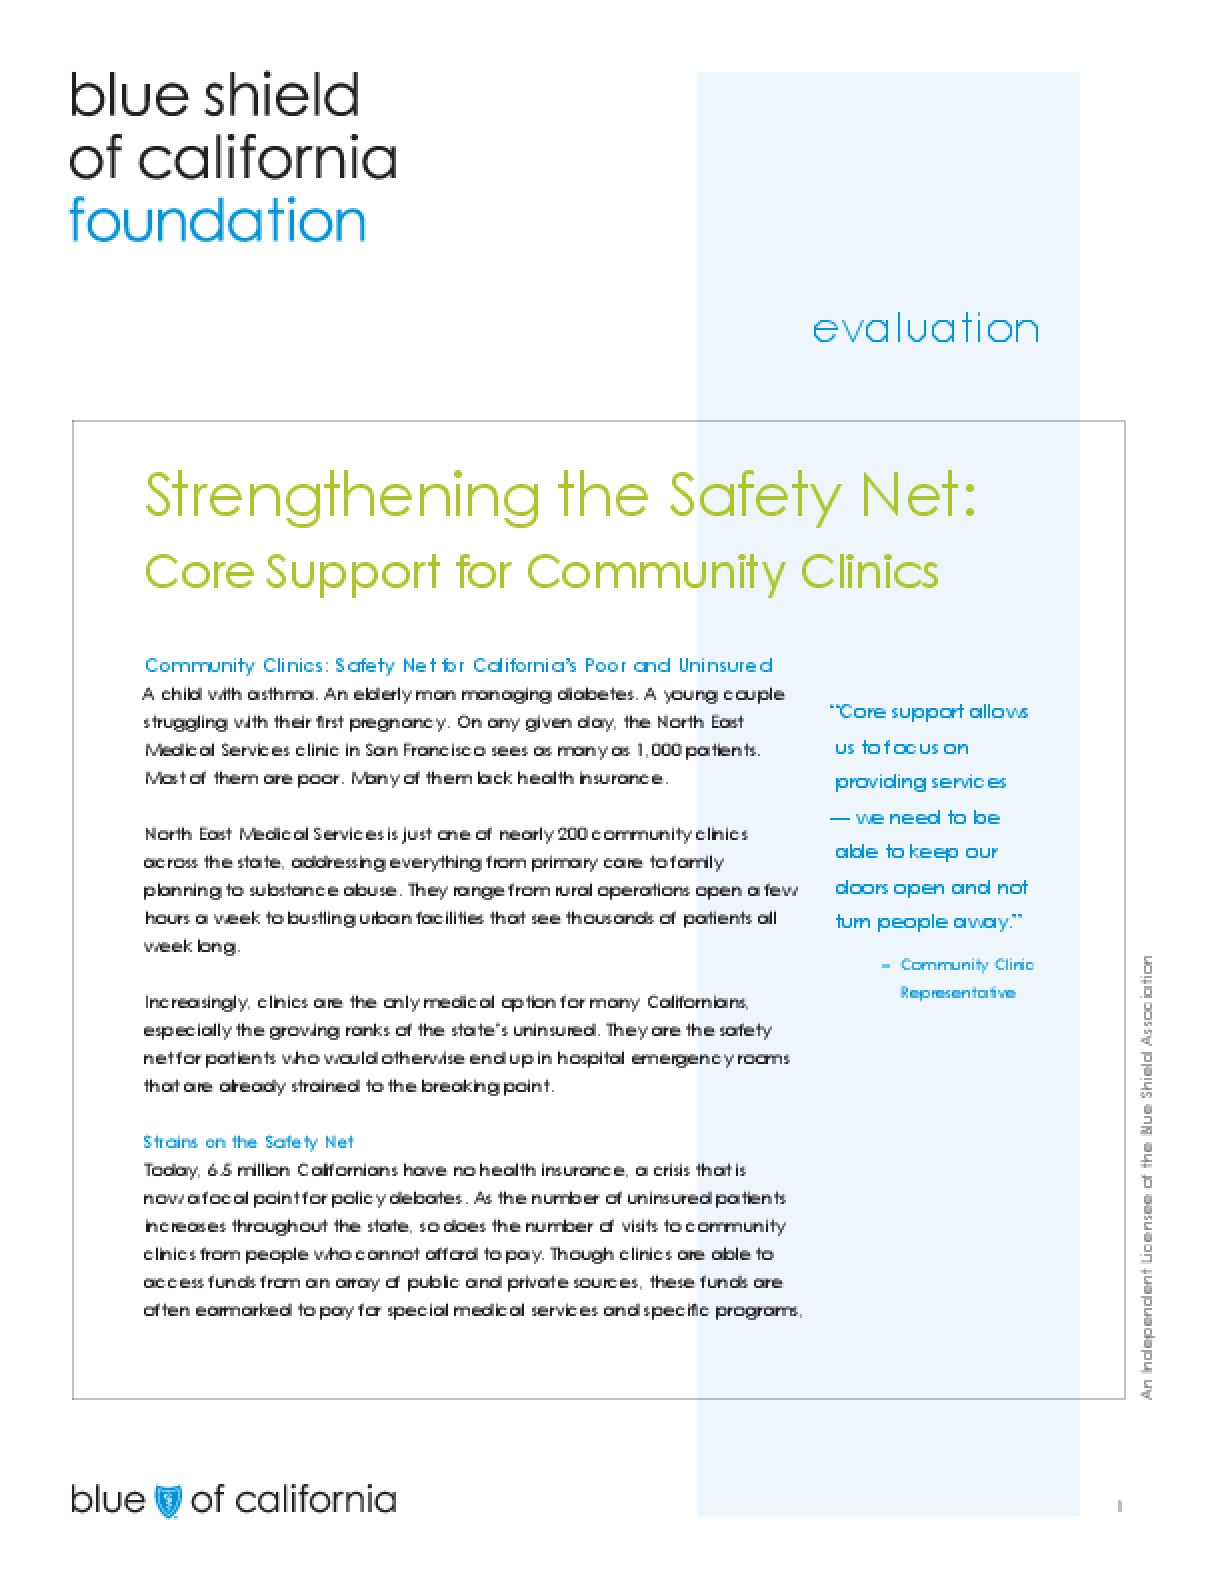 Strengthening the Safety Net: Core Support for Community Clinics